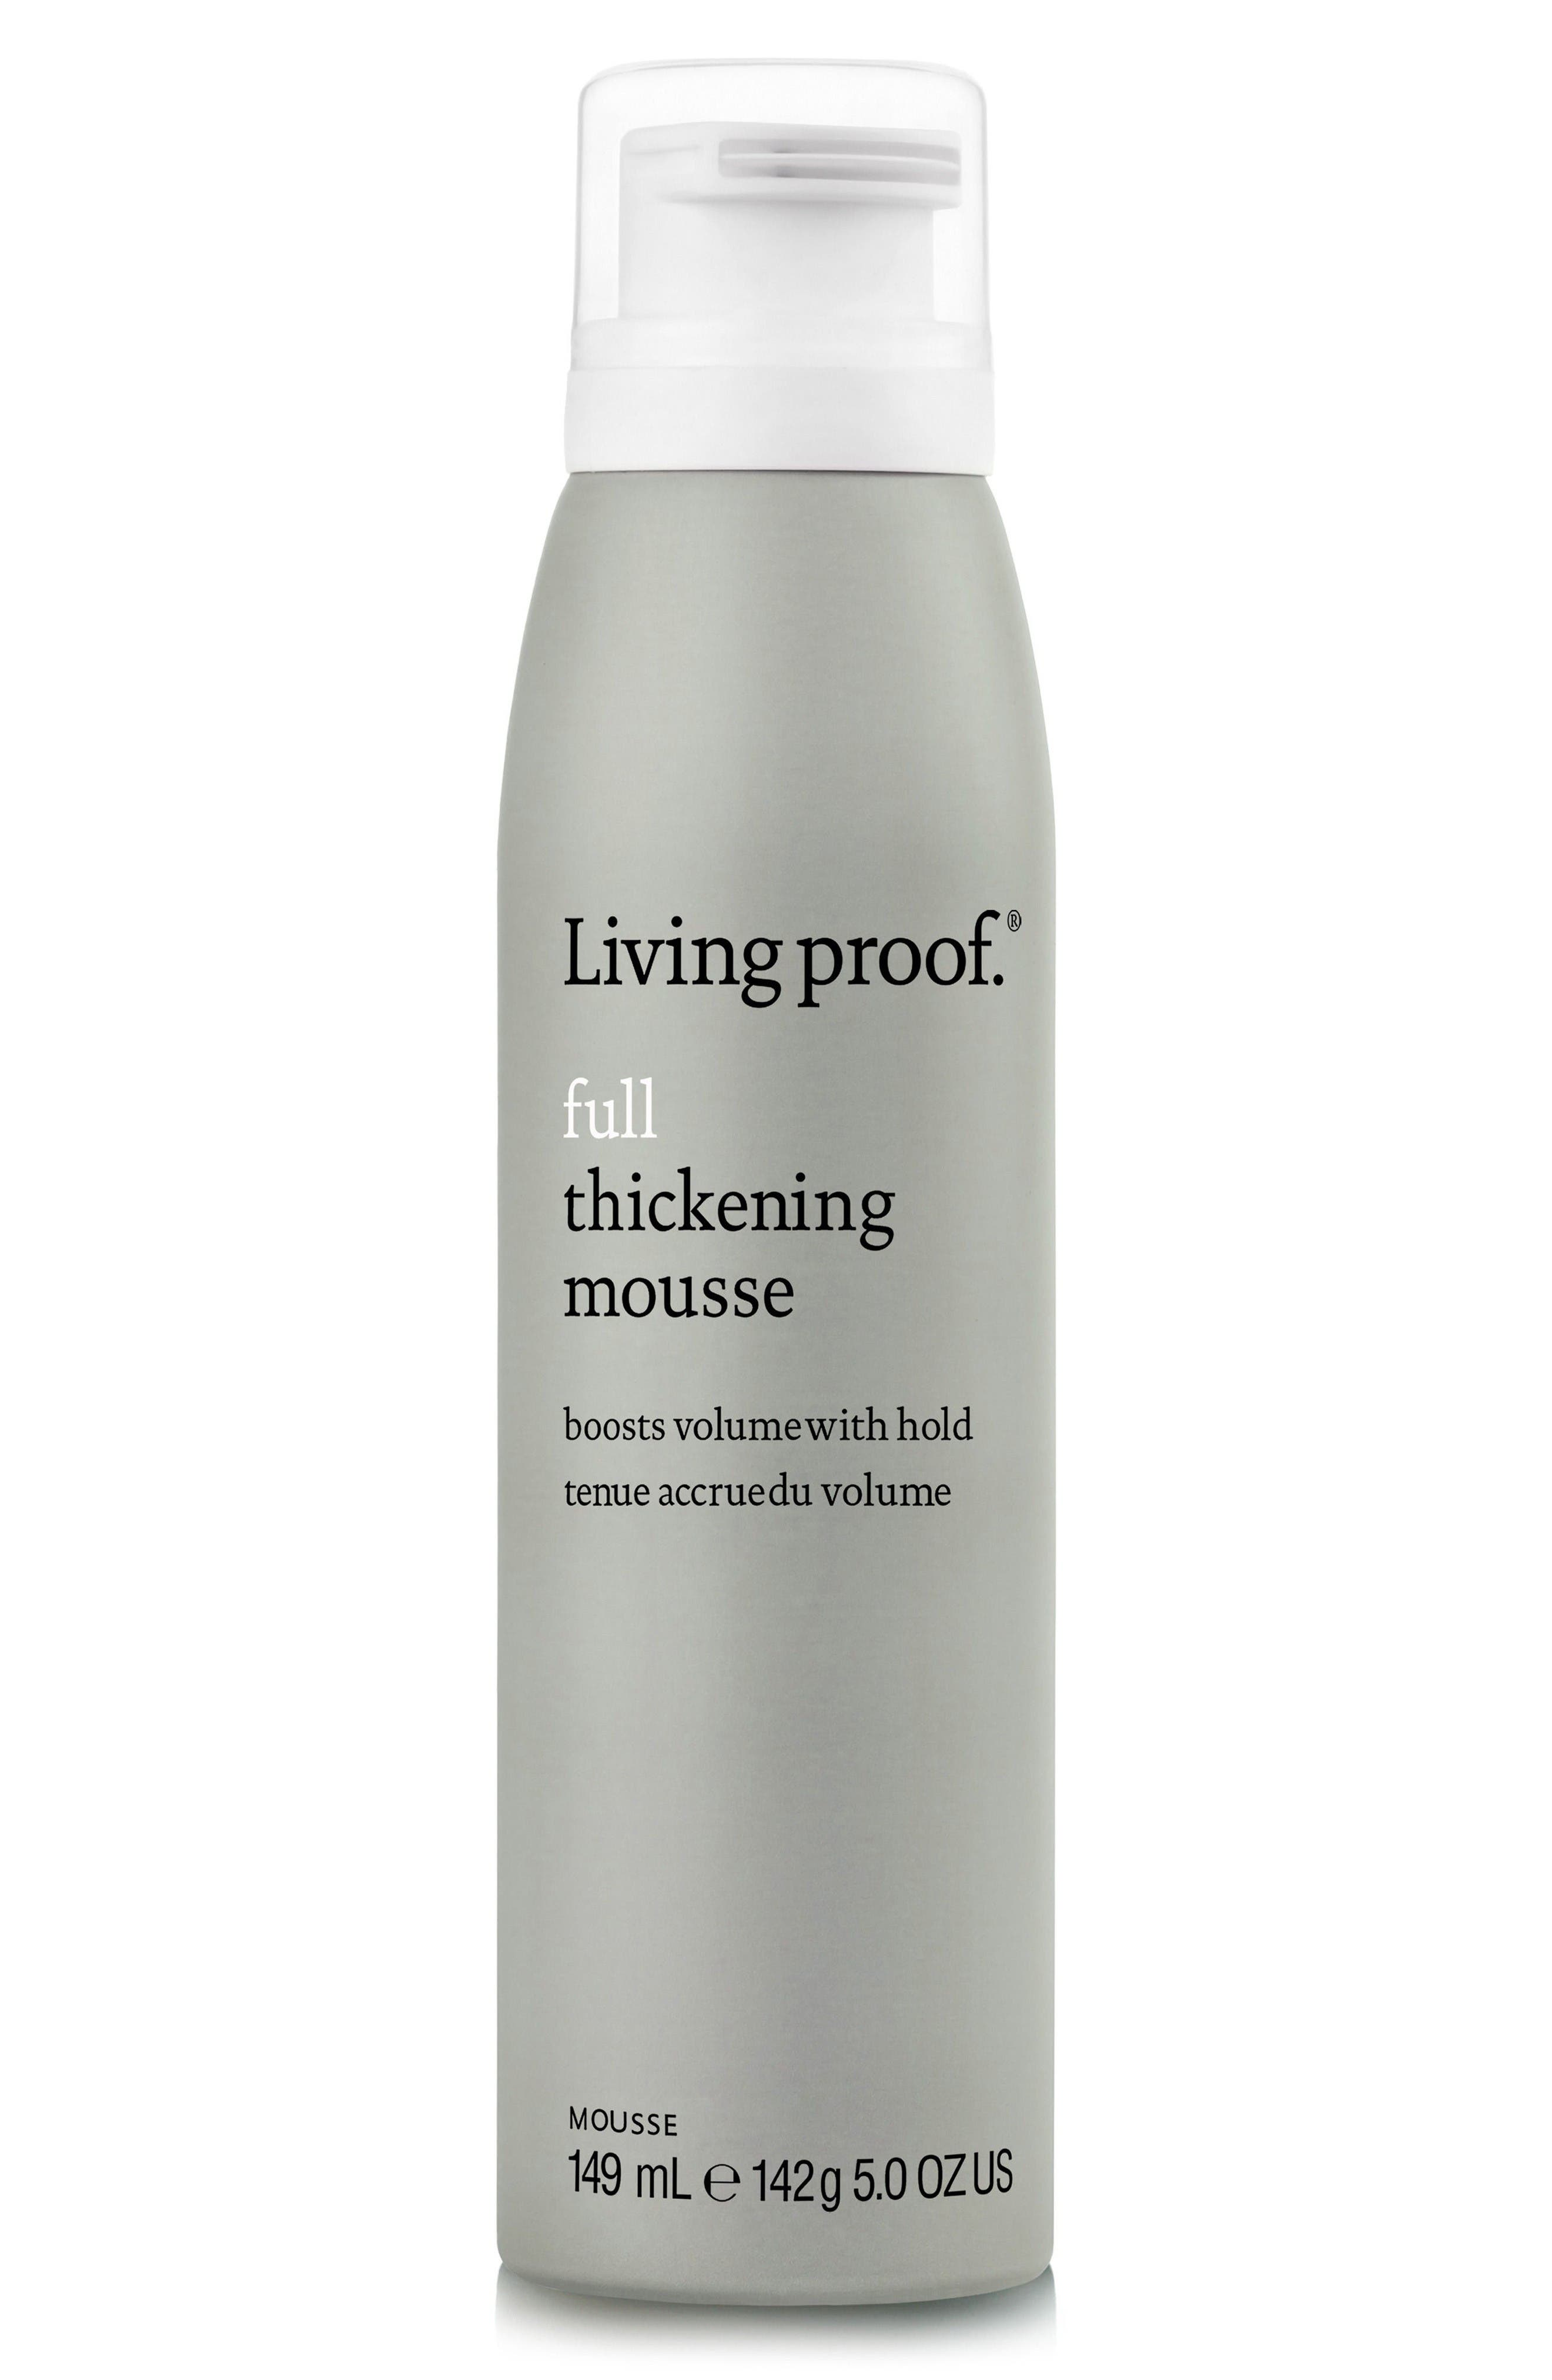 Alternate Image 1 Selected - Living proof® Full Thickening Mousse